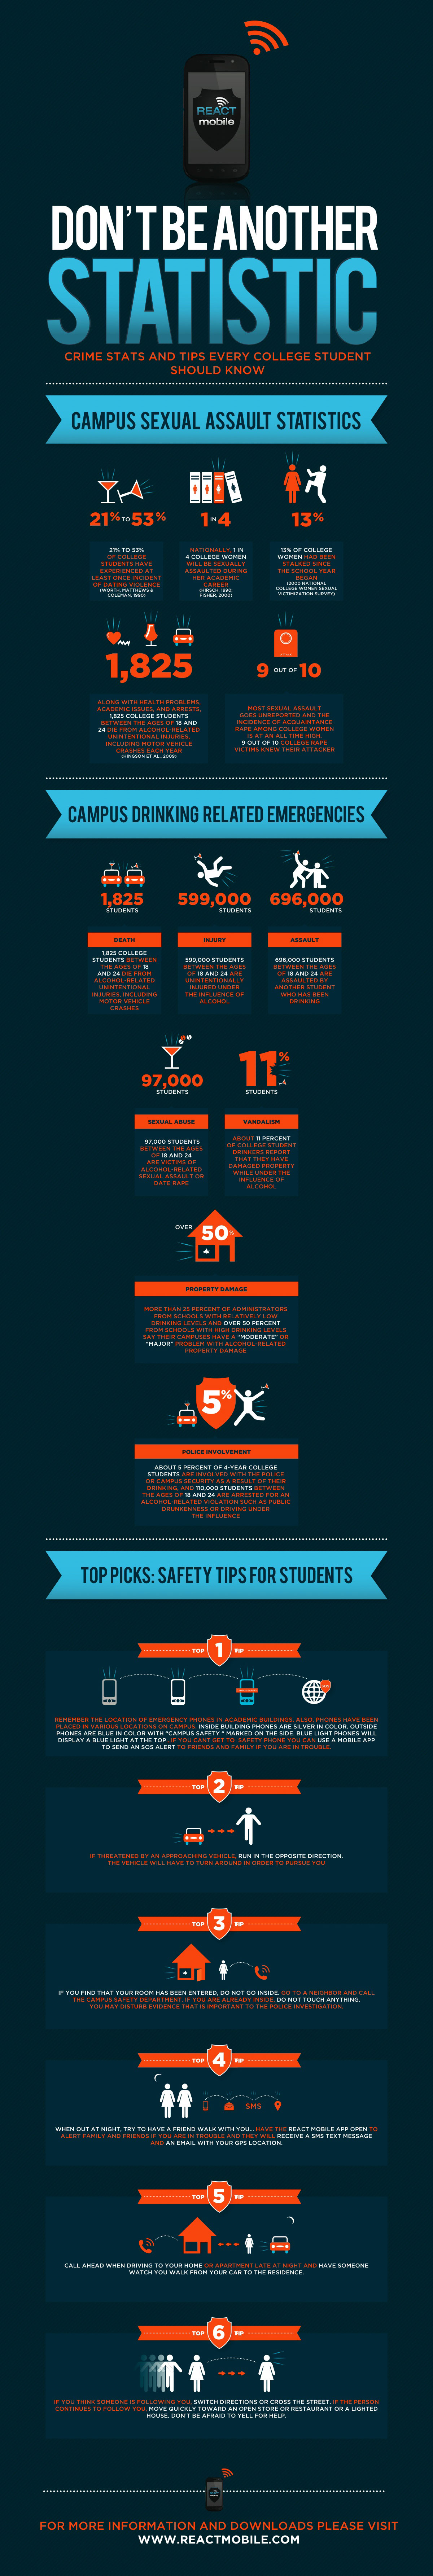 Don't-Be-Another-Statistic-infographic